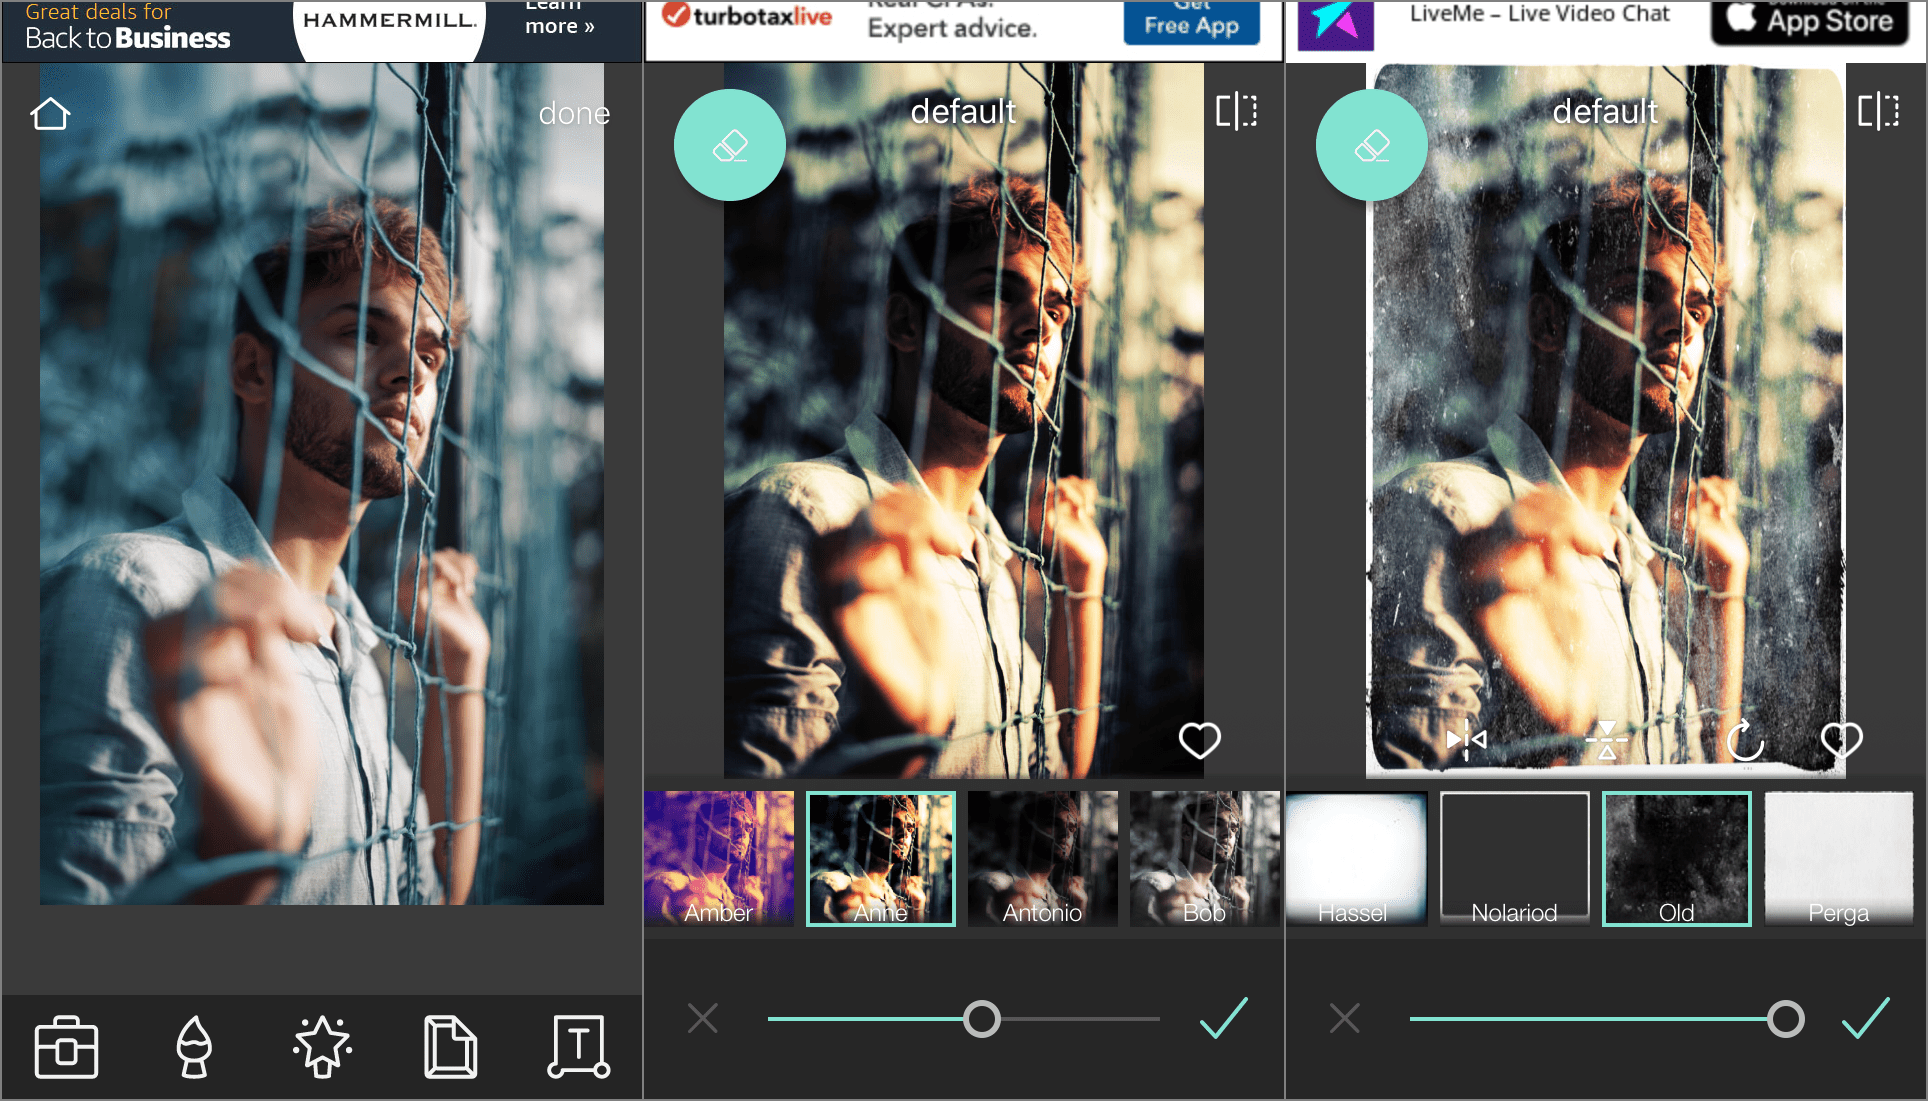 Screenshots of the Pixlr free image editor app on an iPhone